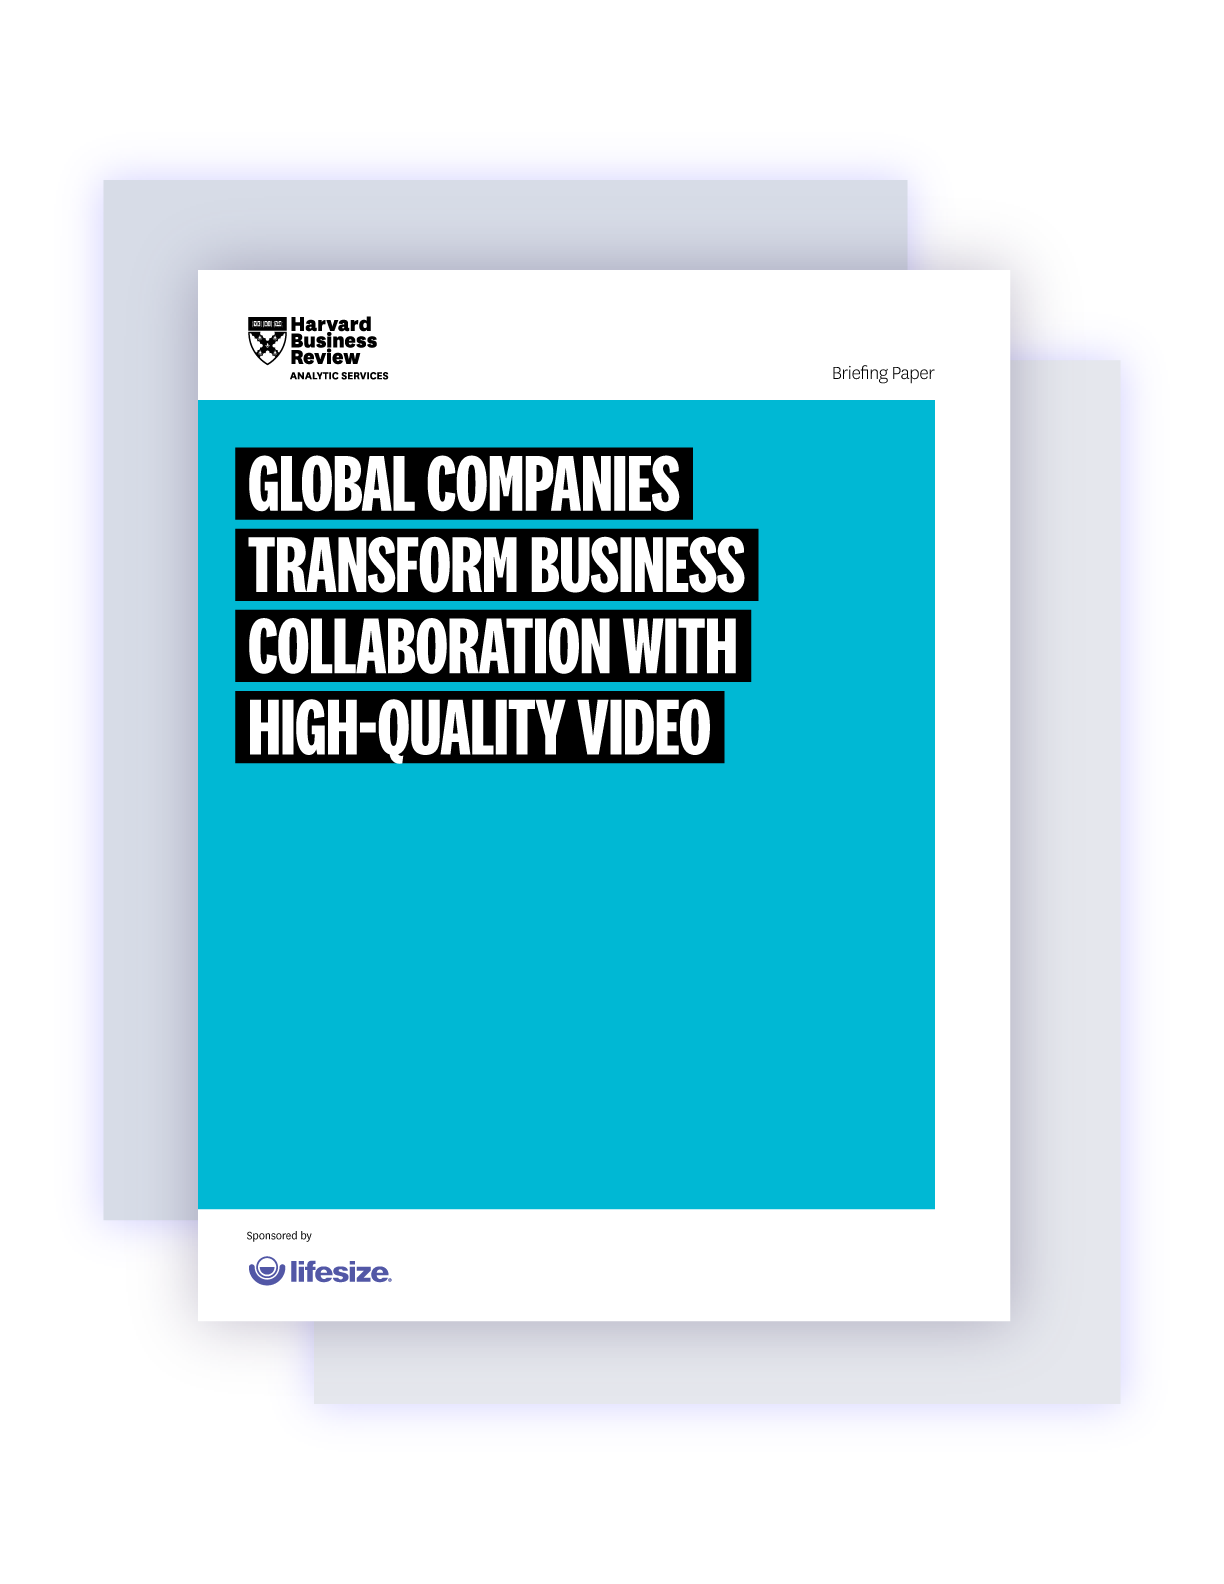 Learn how high-quality video is transforming the way global companies meet, collaborate and do their best work without compromise.